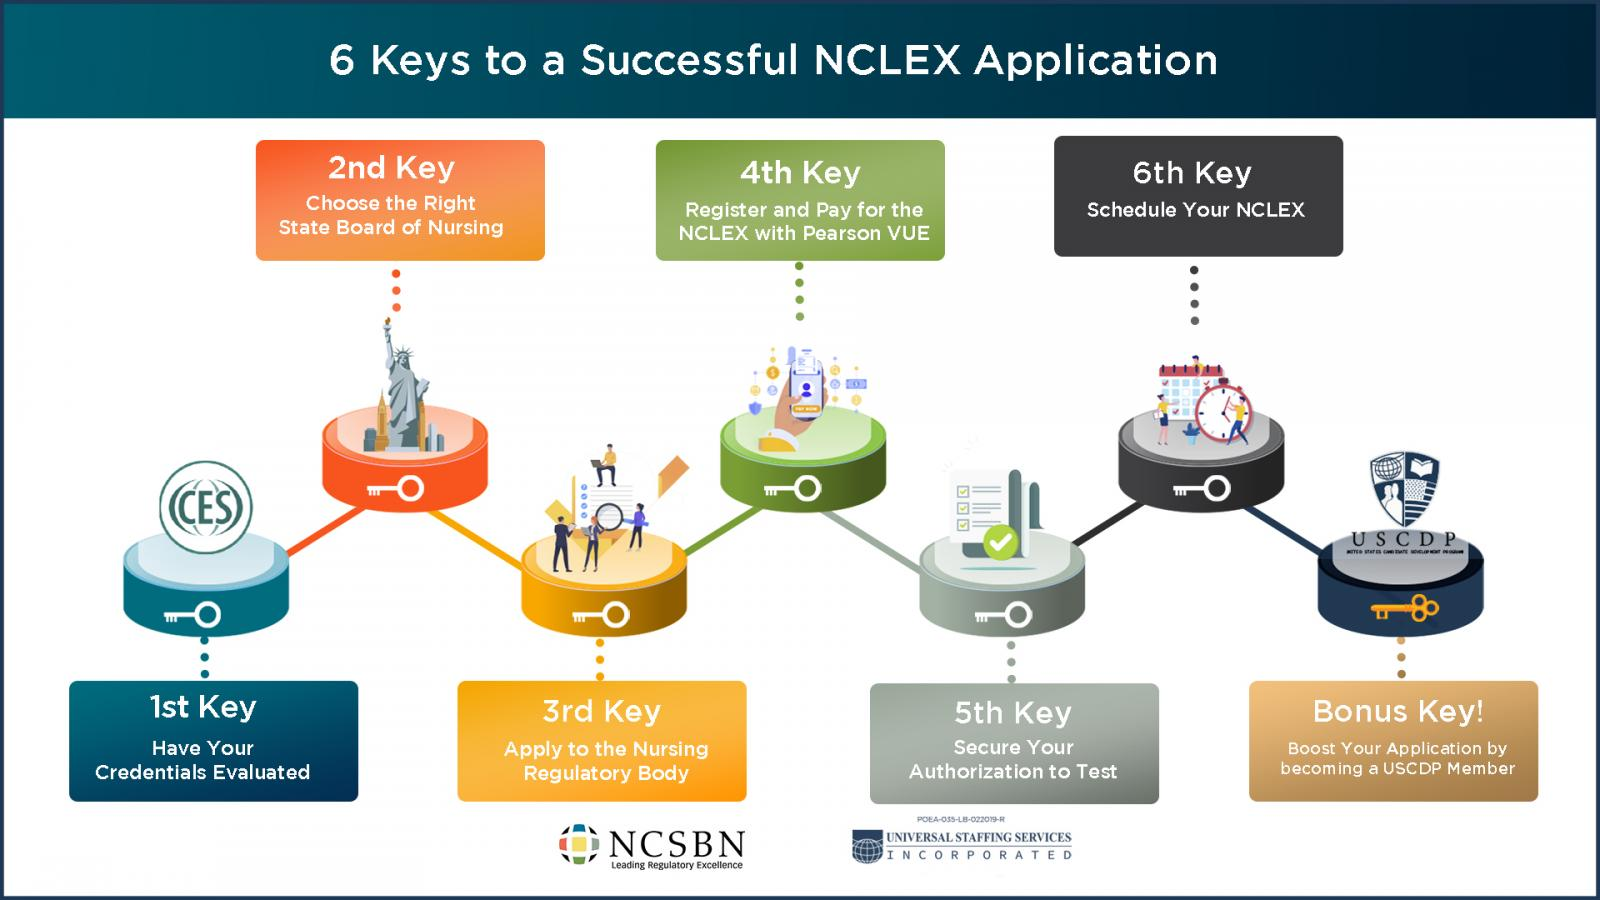 6 keys to a successful NCLEX application